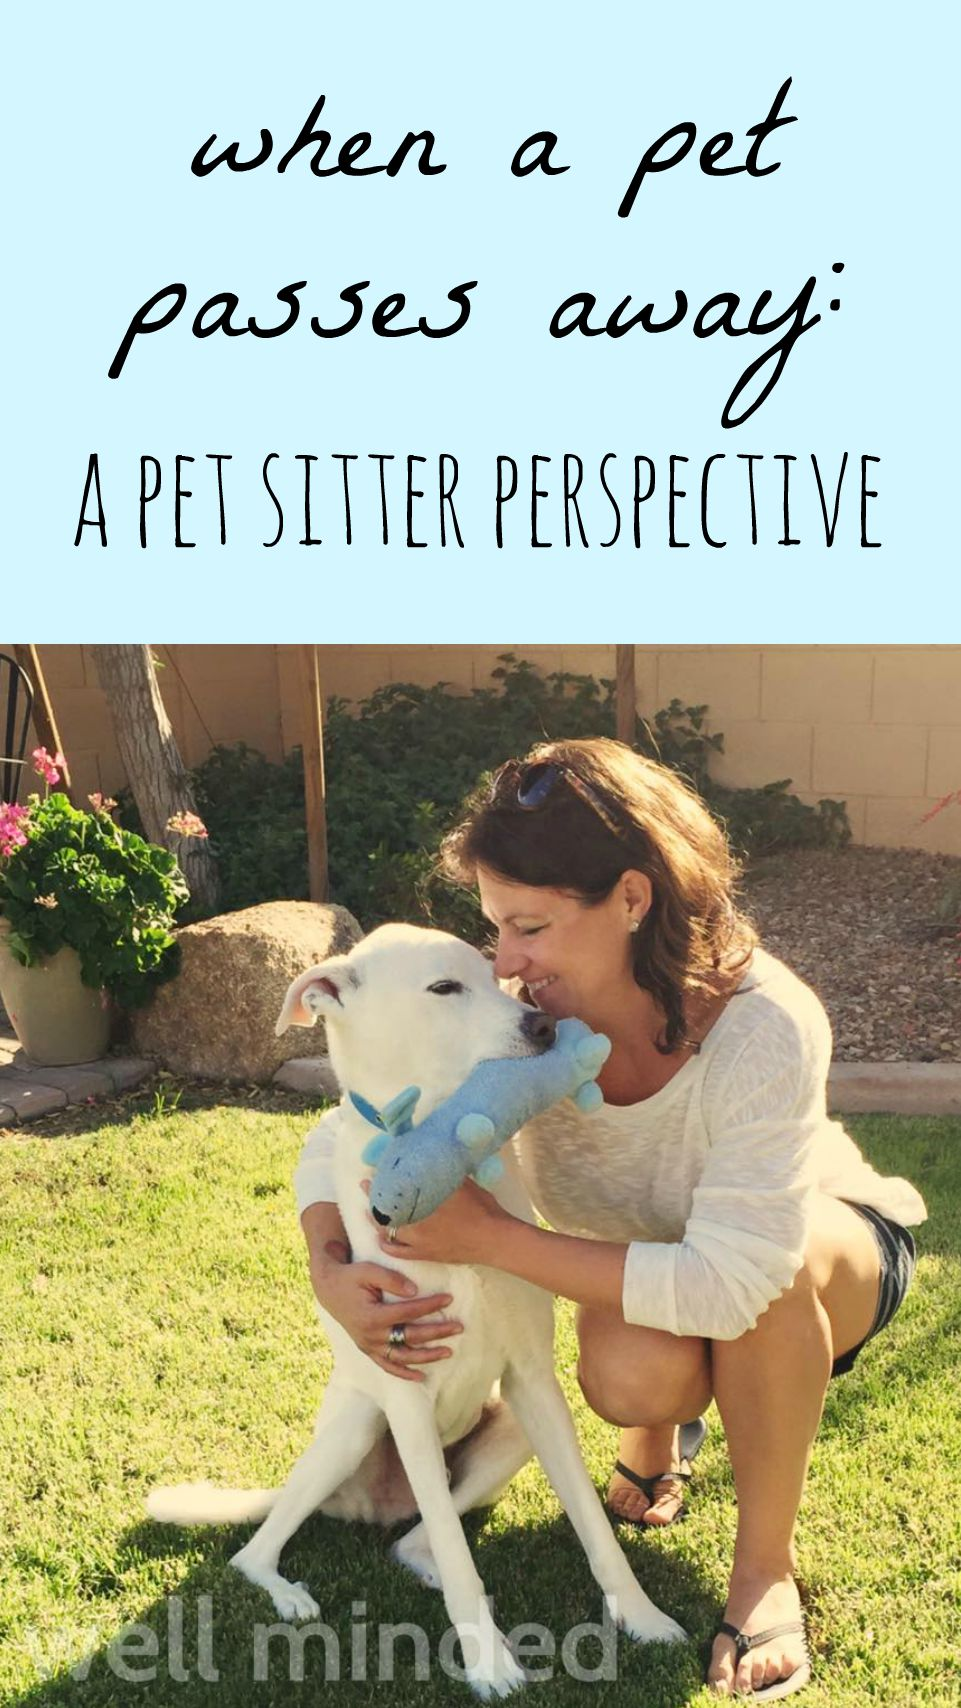 When a Pet Passes Away: A Pet Sitter Perspective